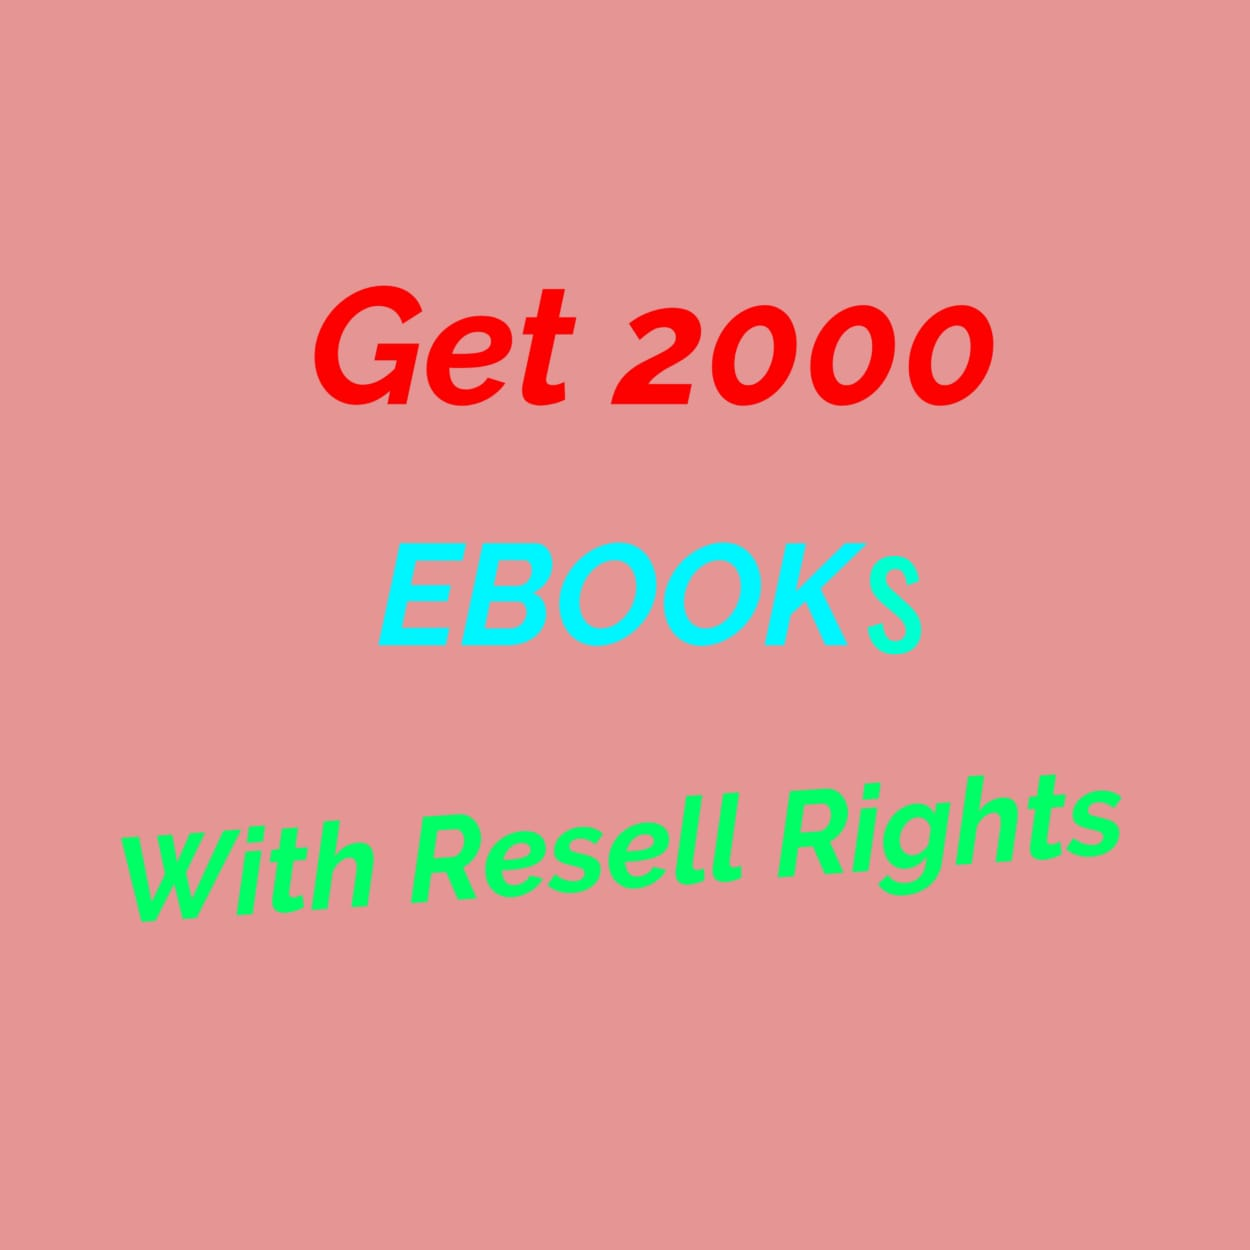 GET 2000 New EBooks With Resell Rights